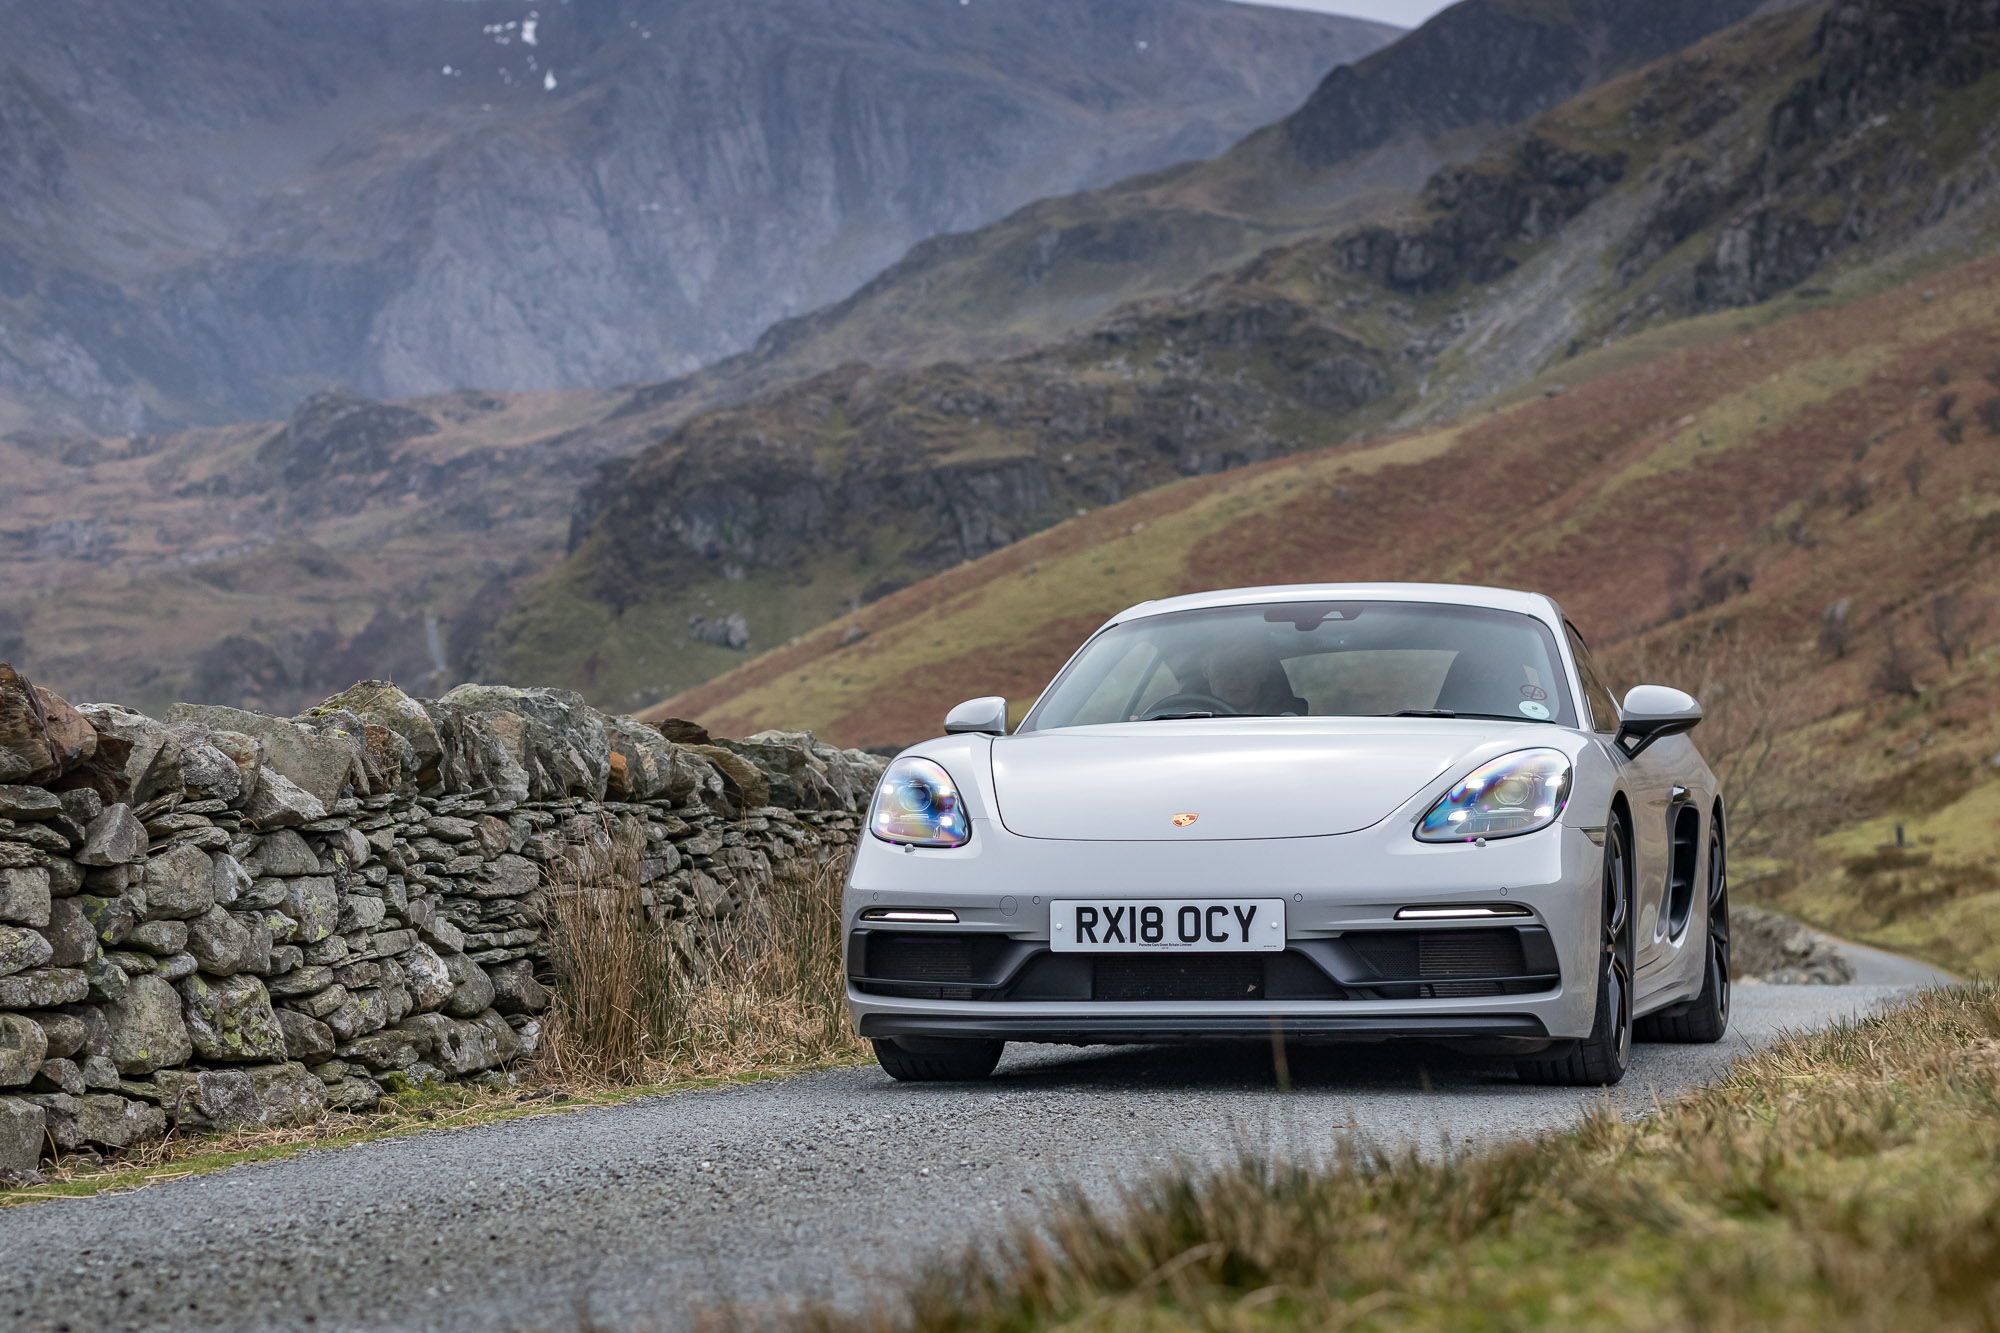 2019 Porsche Cayman GTS Review (Everything You Need To Know)